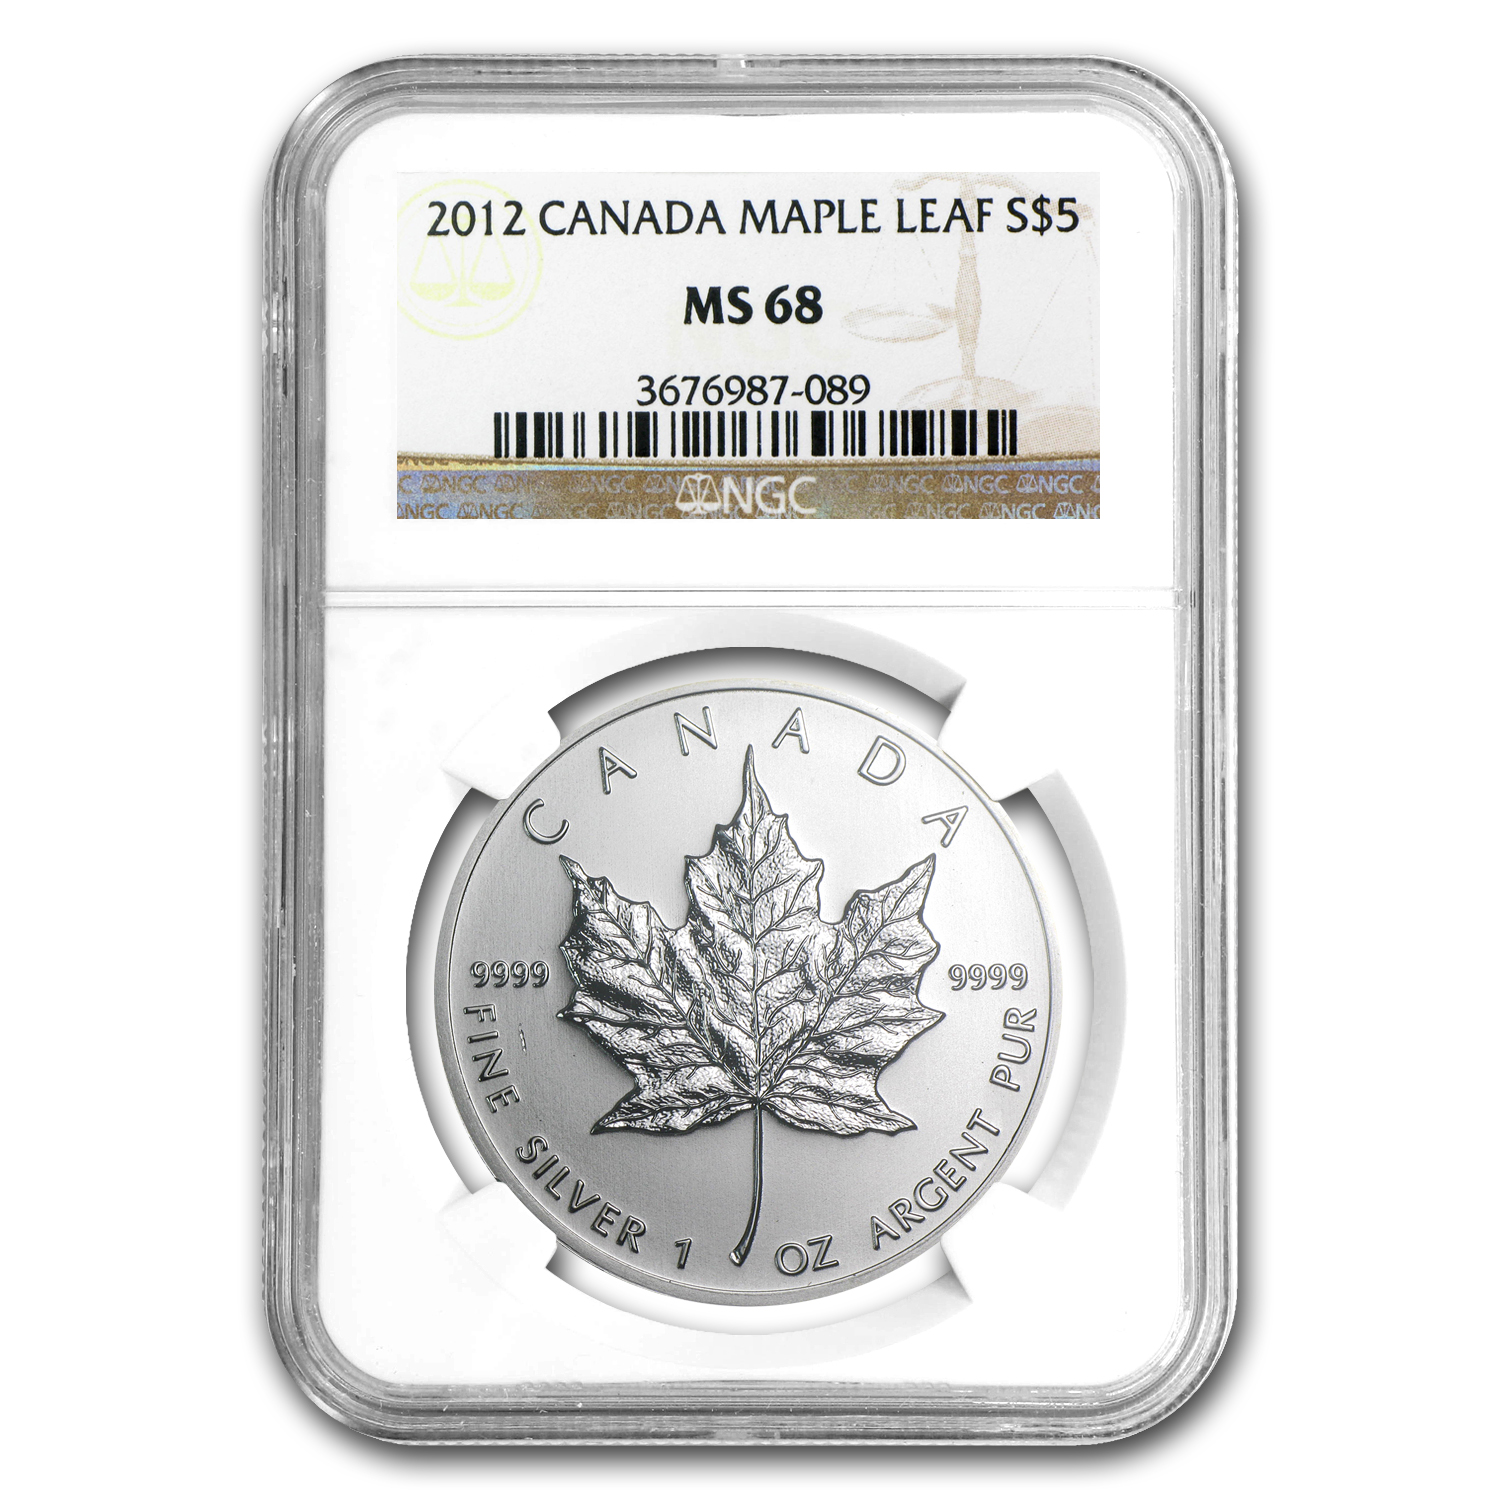 2012 1 oz Silver Canadian Maple Leaf MS-68 NGC